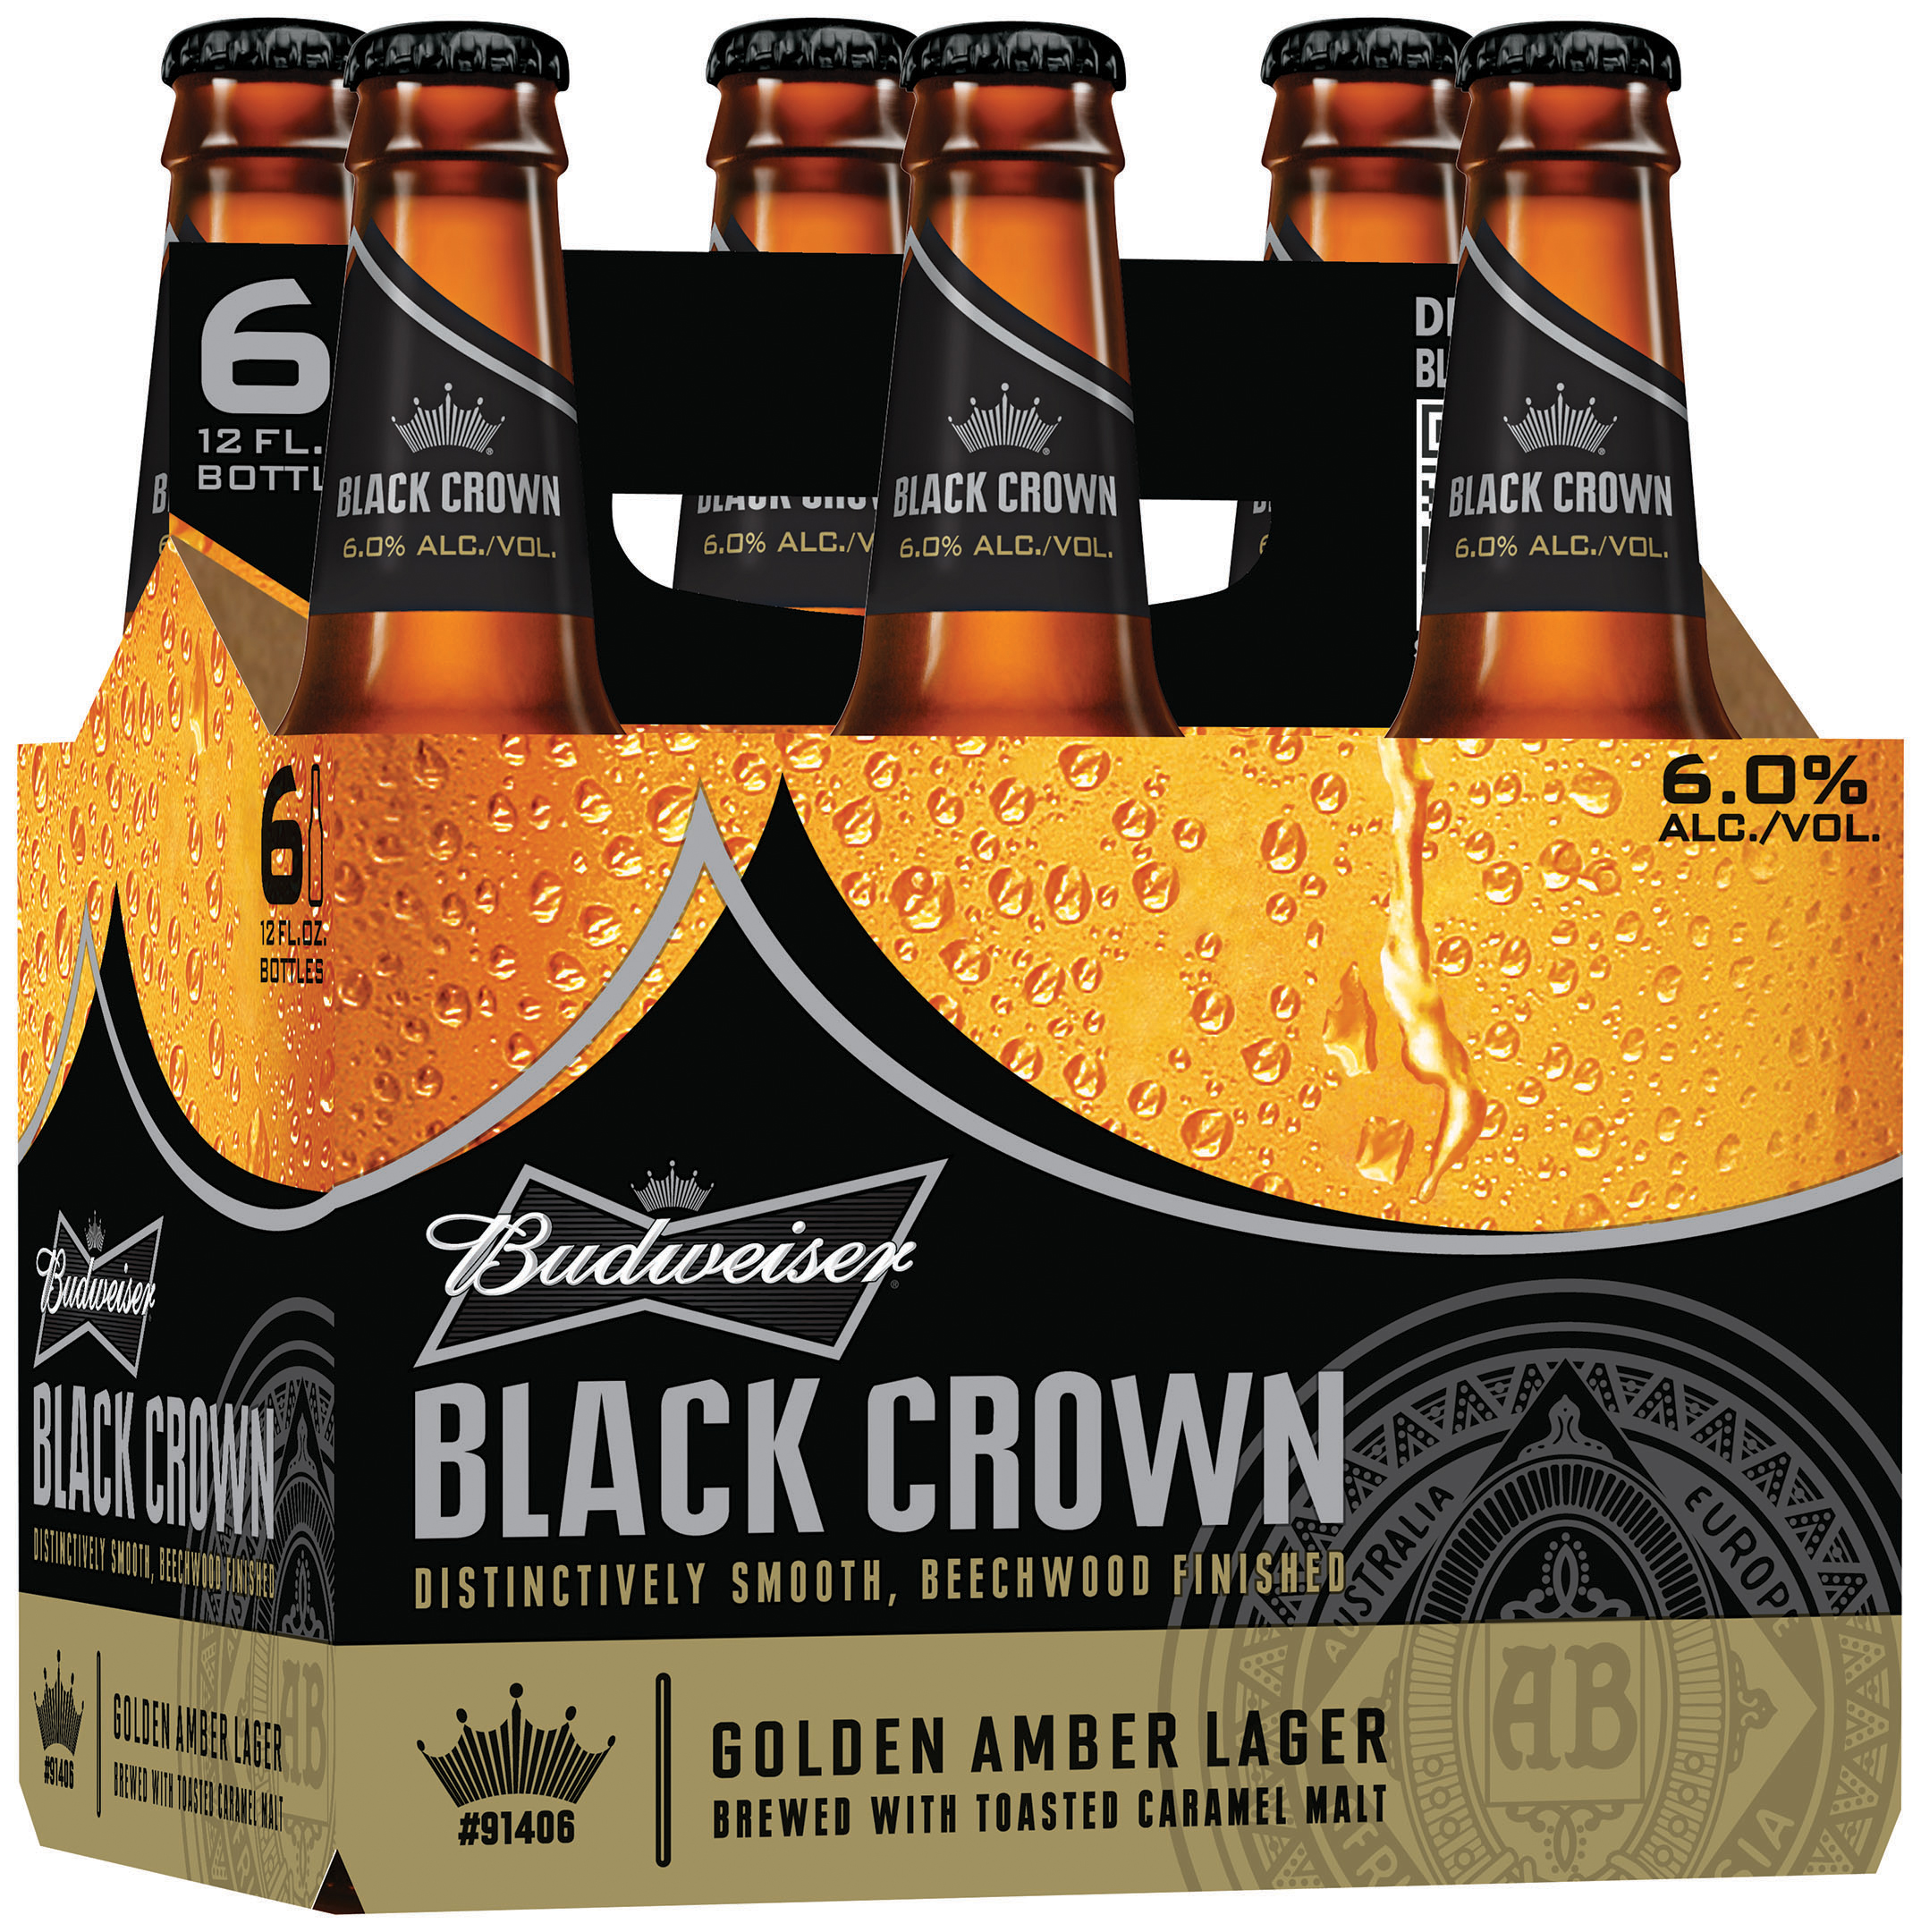 Bud debuting new budweiser black crown with super bowl commercial bud debuting new budweiser black crown with super bowl commercial mozeypictures Gallery